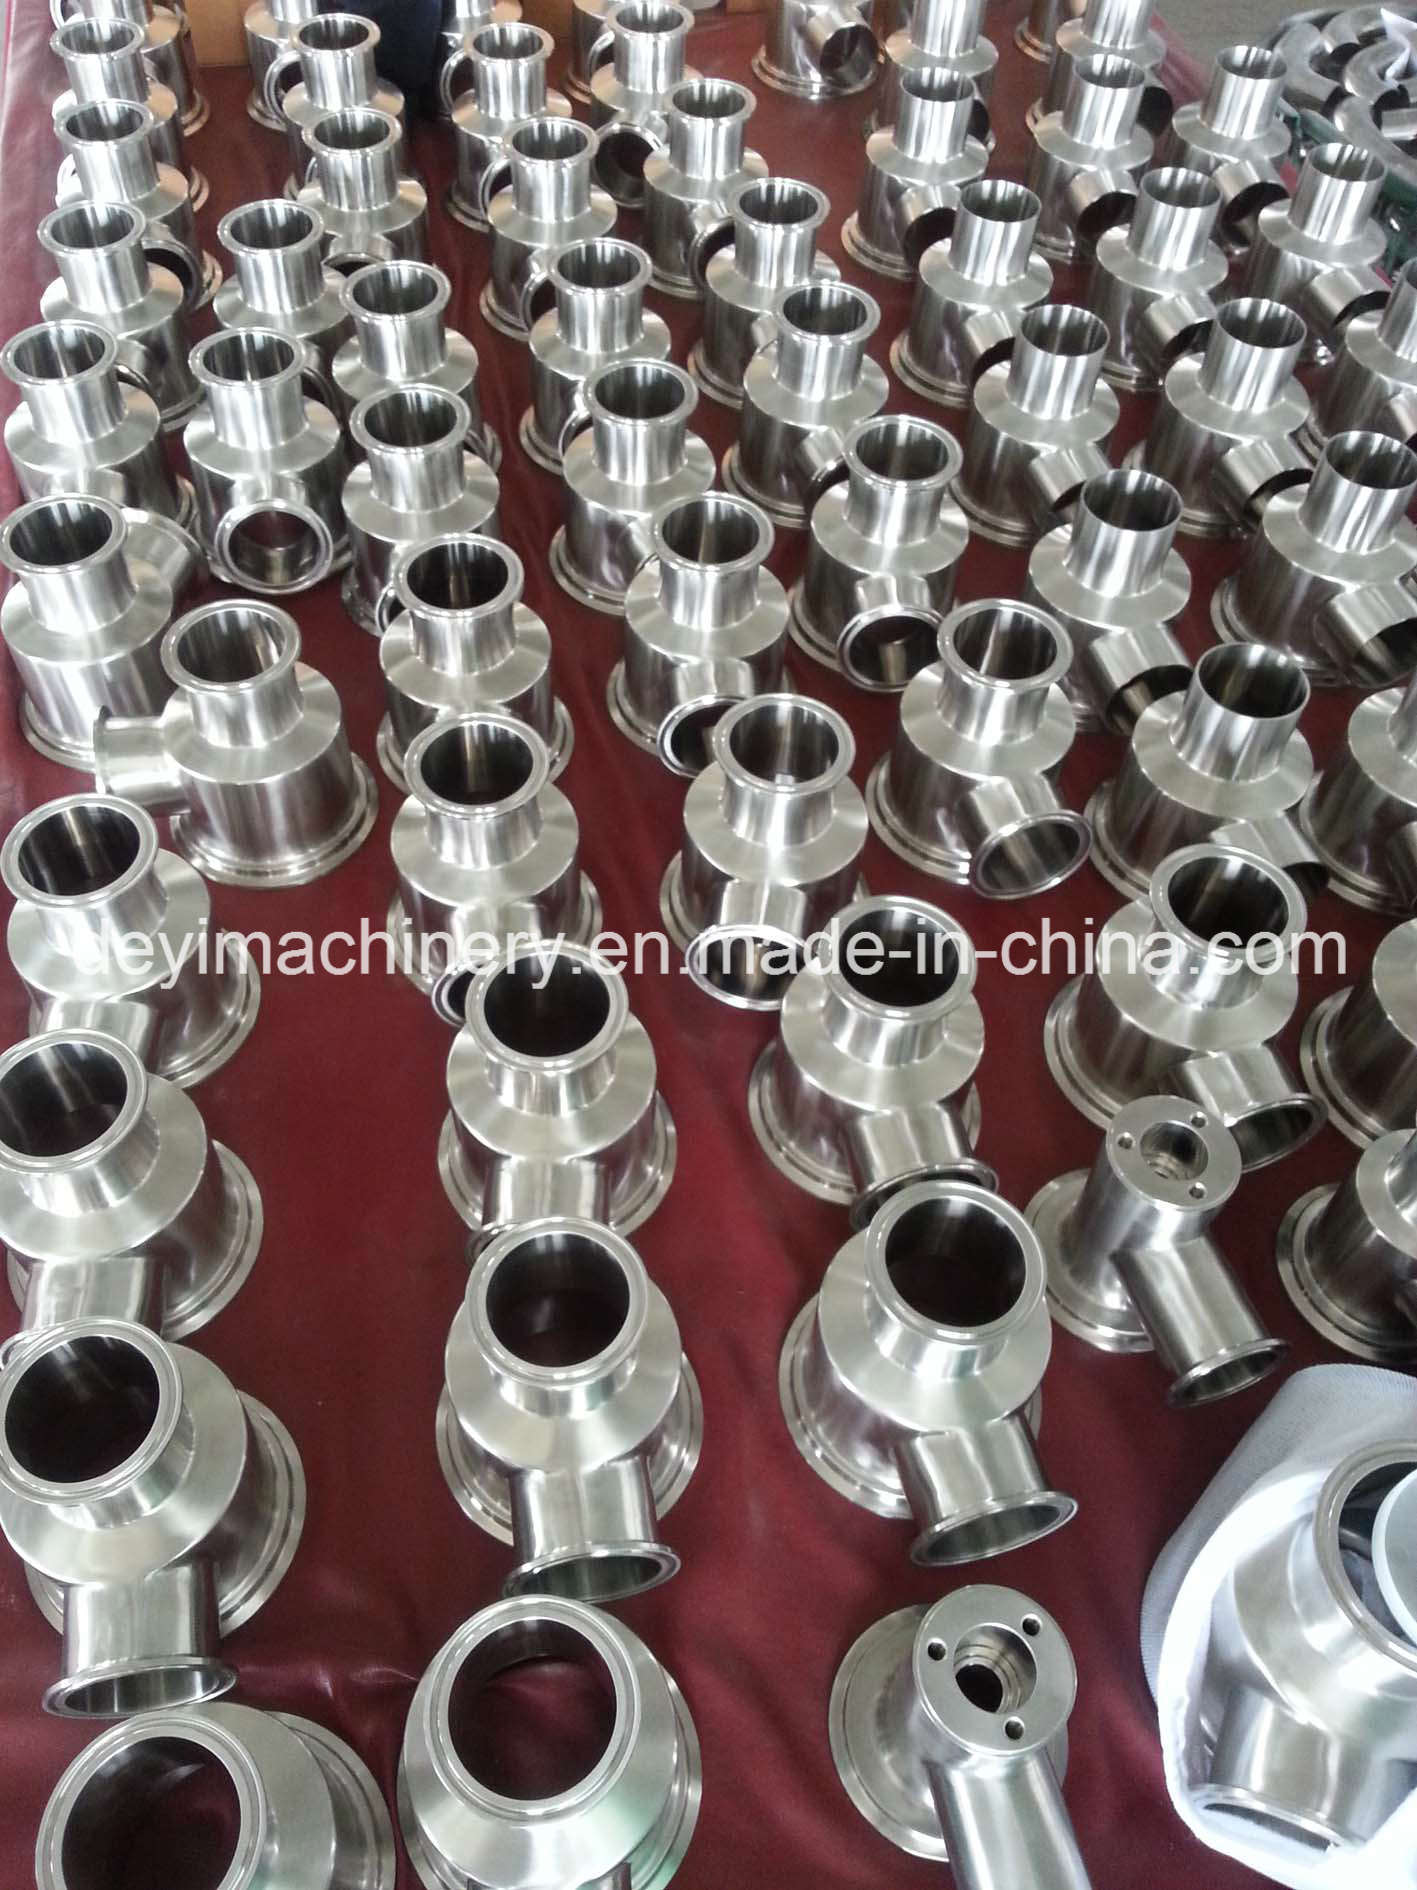 Stainless Steel Hygienic High Precision Sanitary Pipe Fittings (DE-S001)